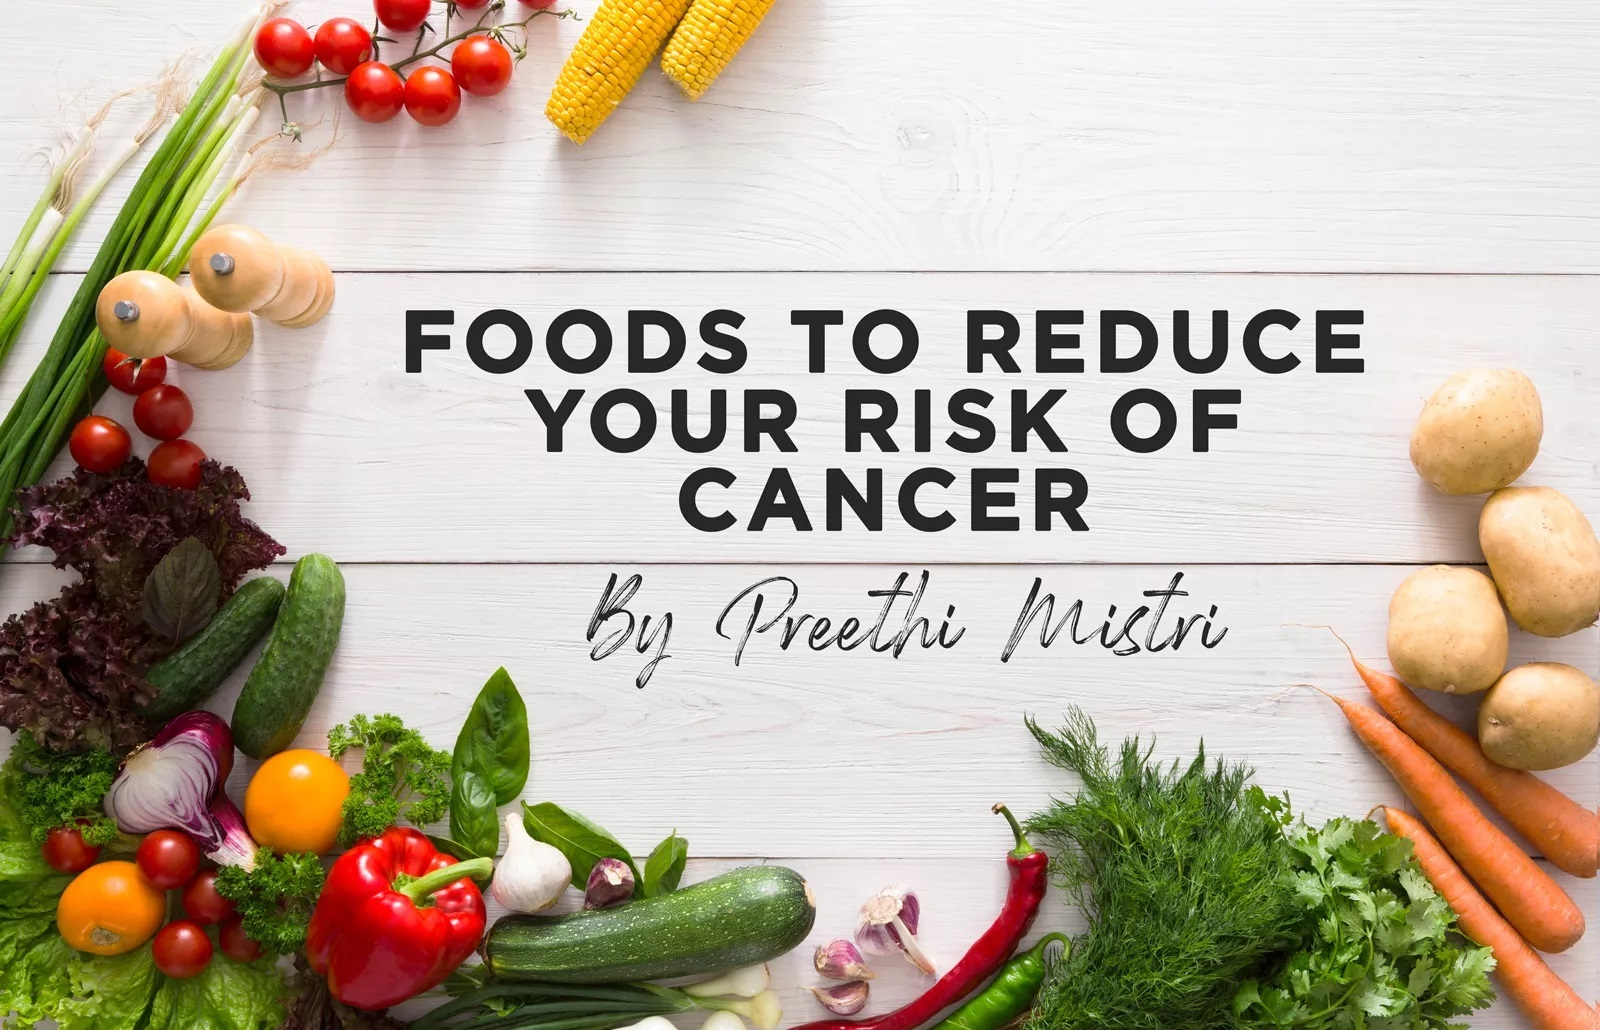 Foods to reduce your risk of cancer - by Preethi Mistri